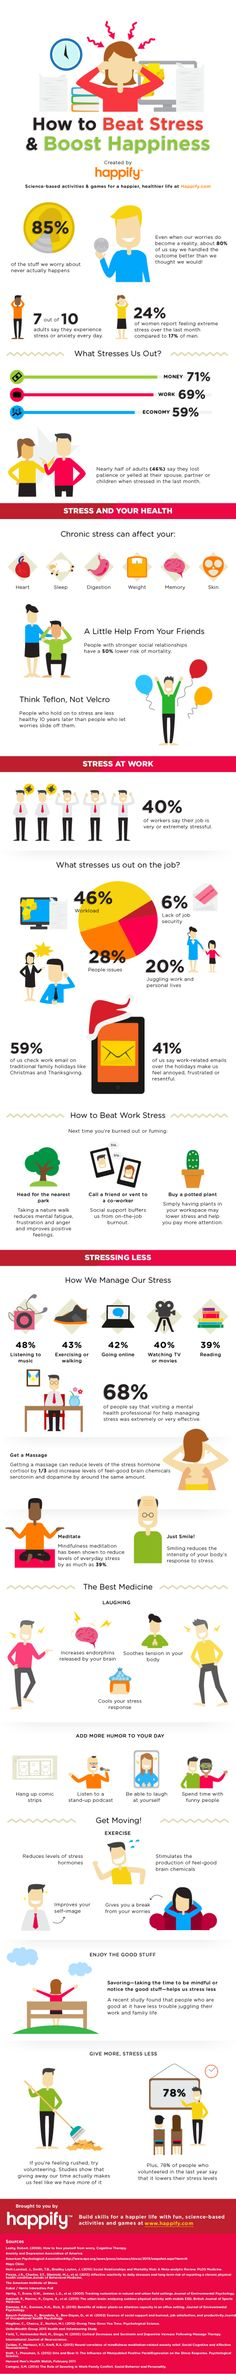 How to boost happiness and beat stress infographic